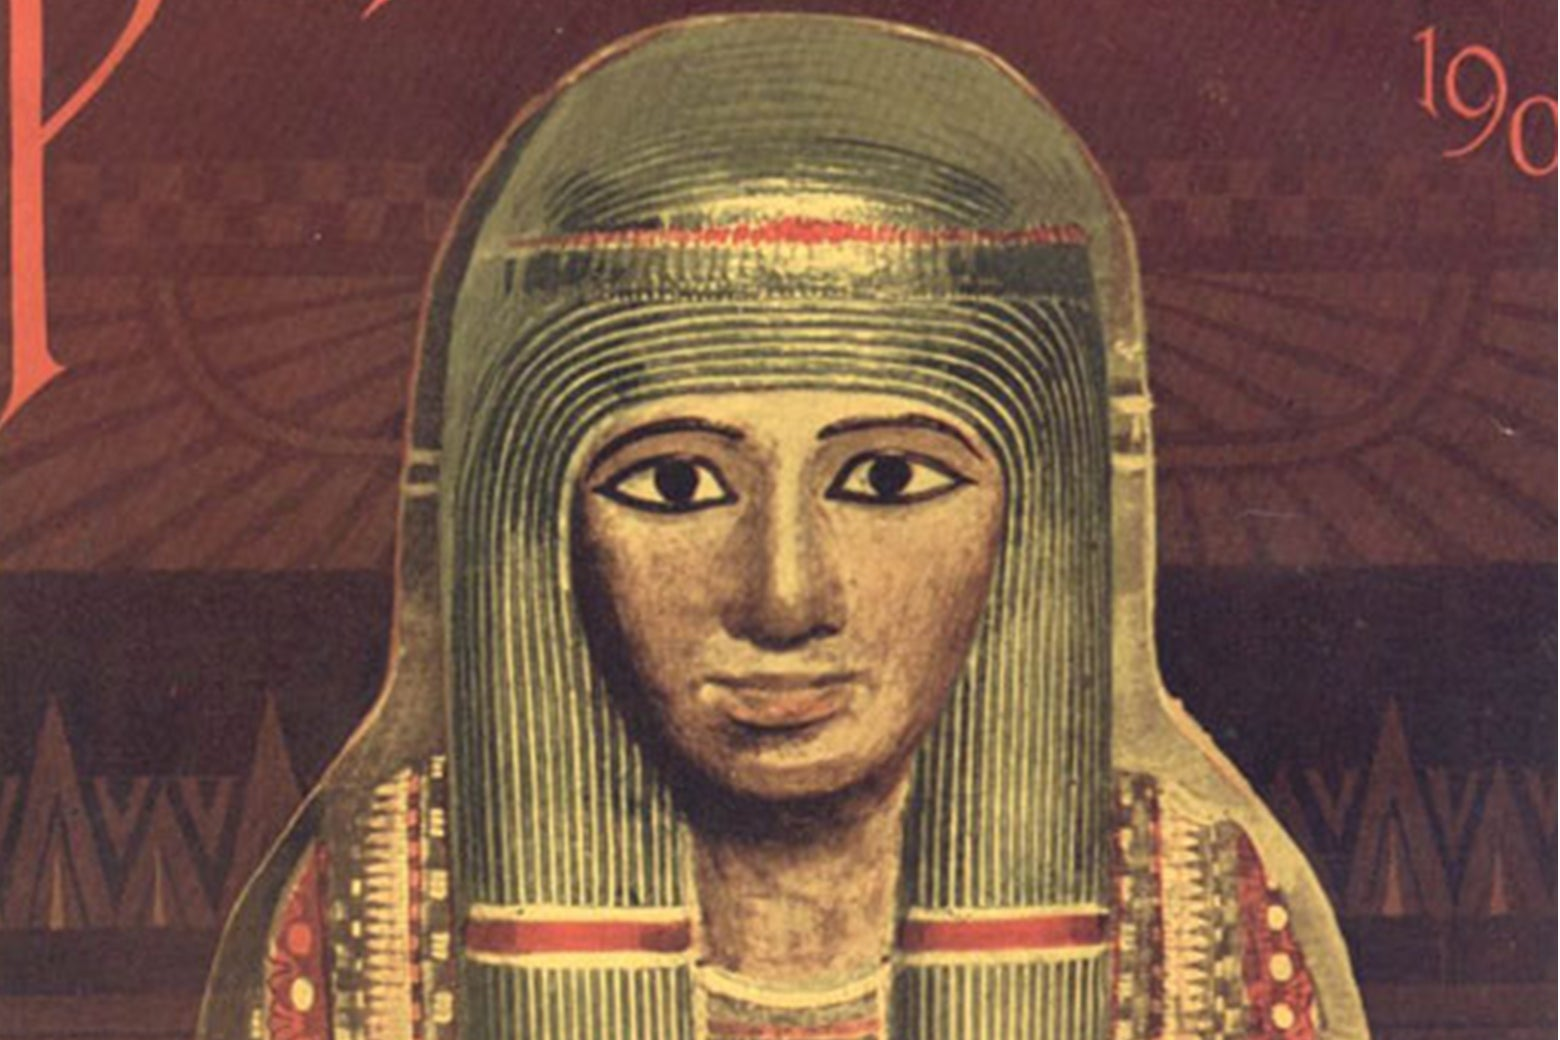 A painted mummy case on the cover of a magazine.